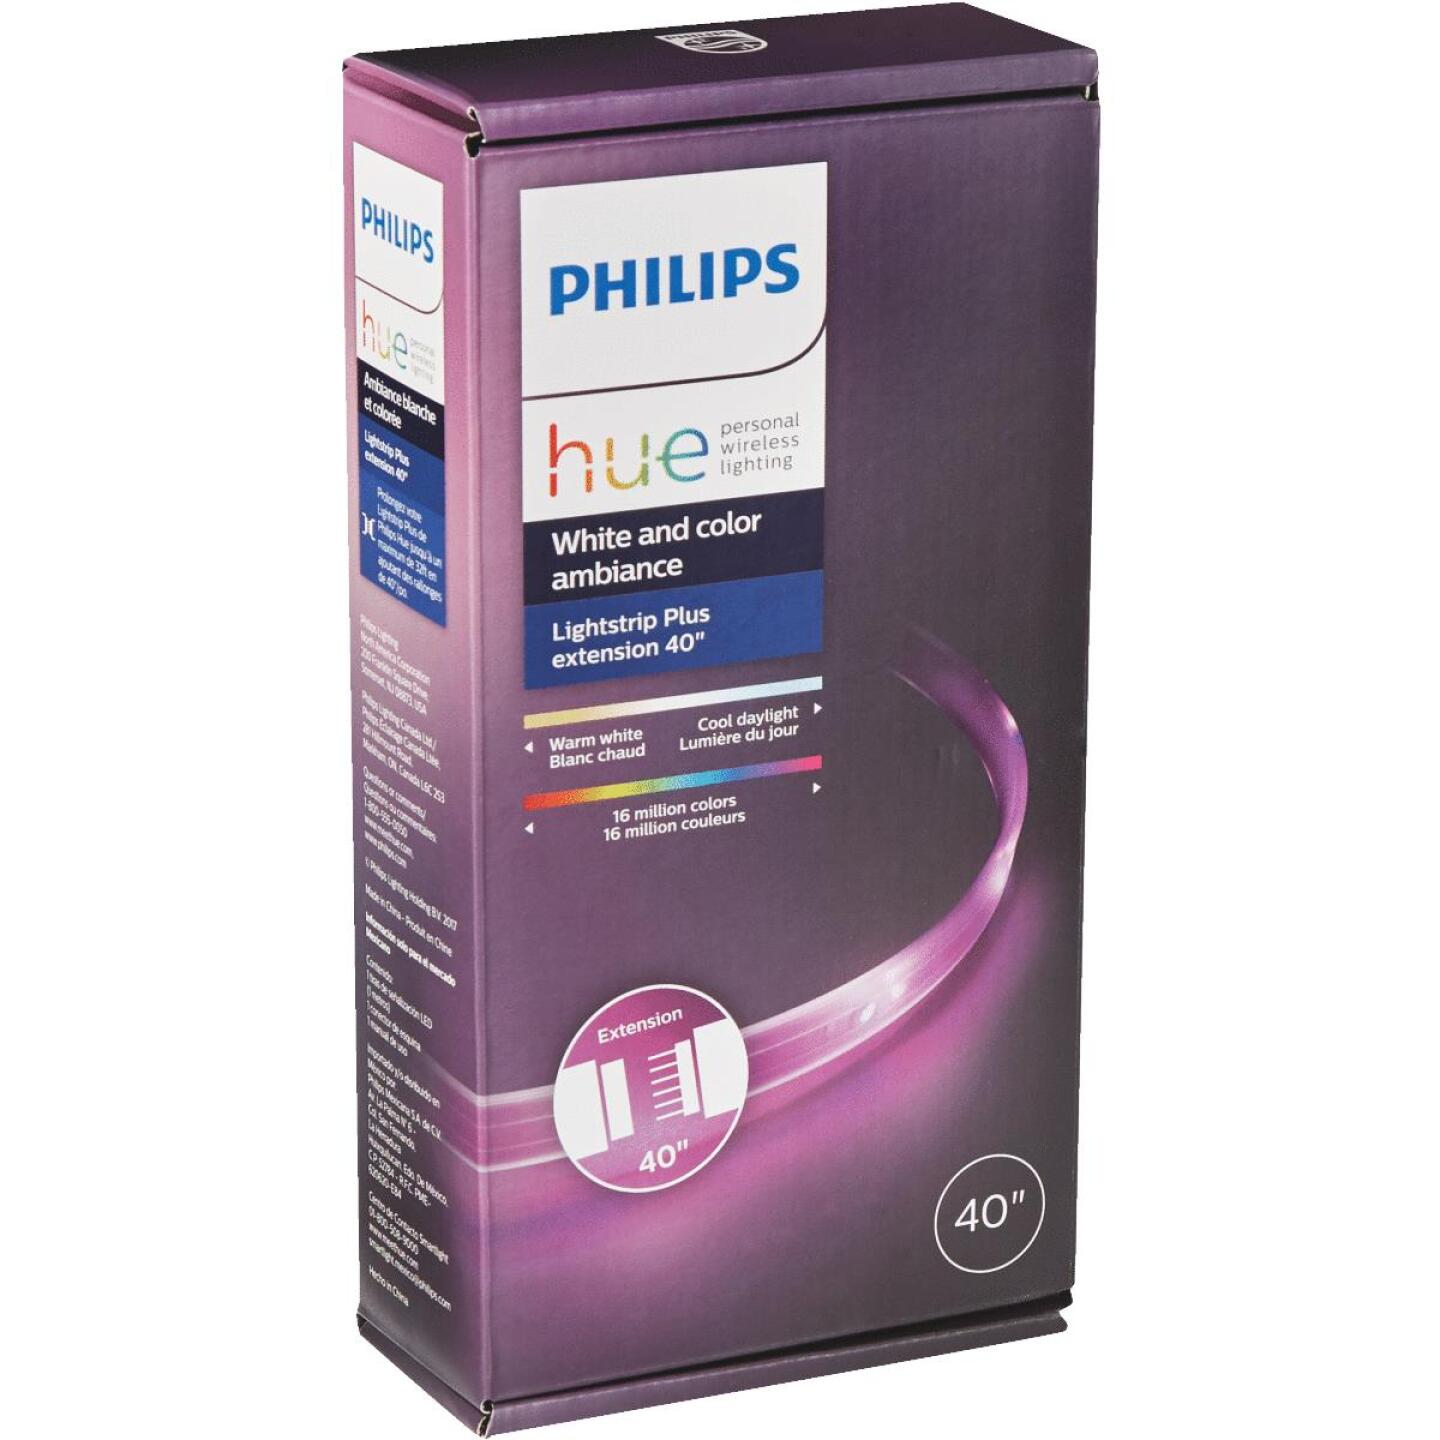 Philips Hue 40 In. Plug-In LED Lightstrip Plus Extension Image 4